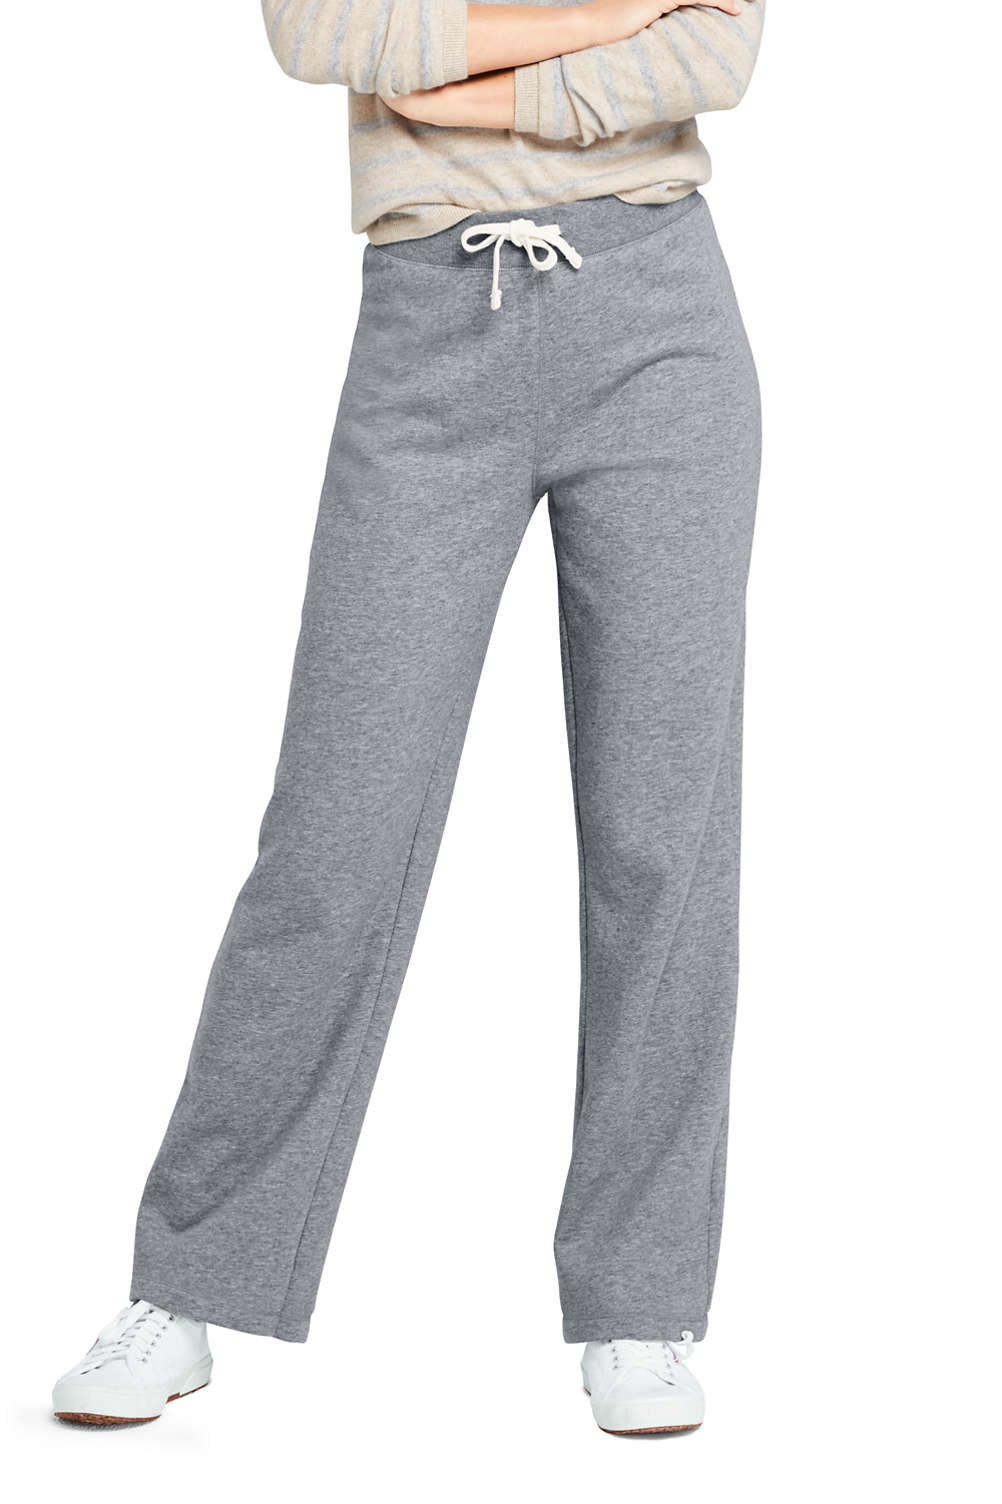 clients first many fashionable official shop Women's Sweatpants